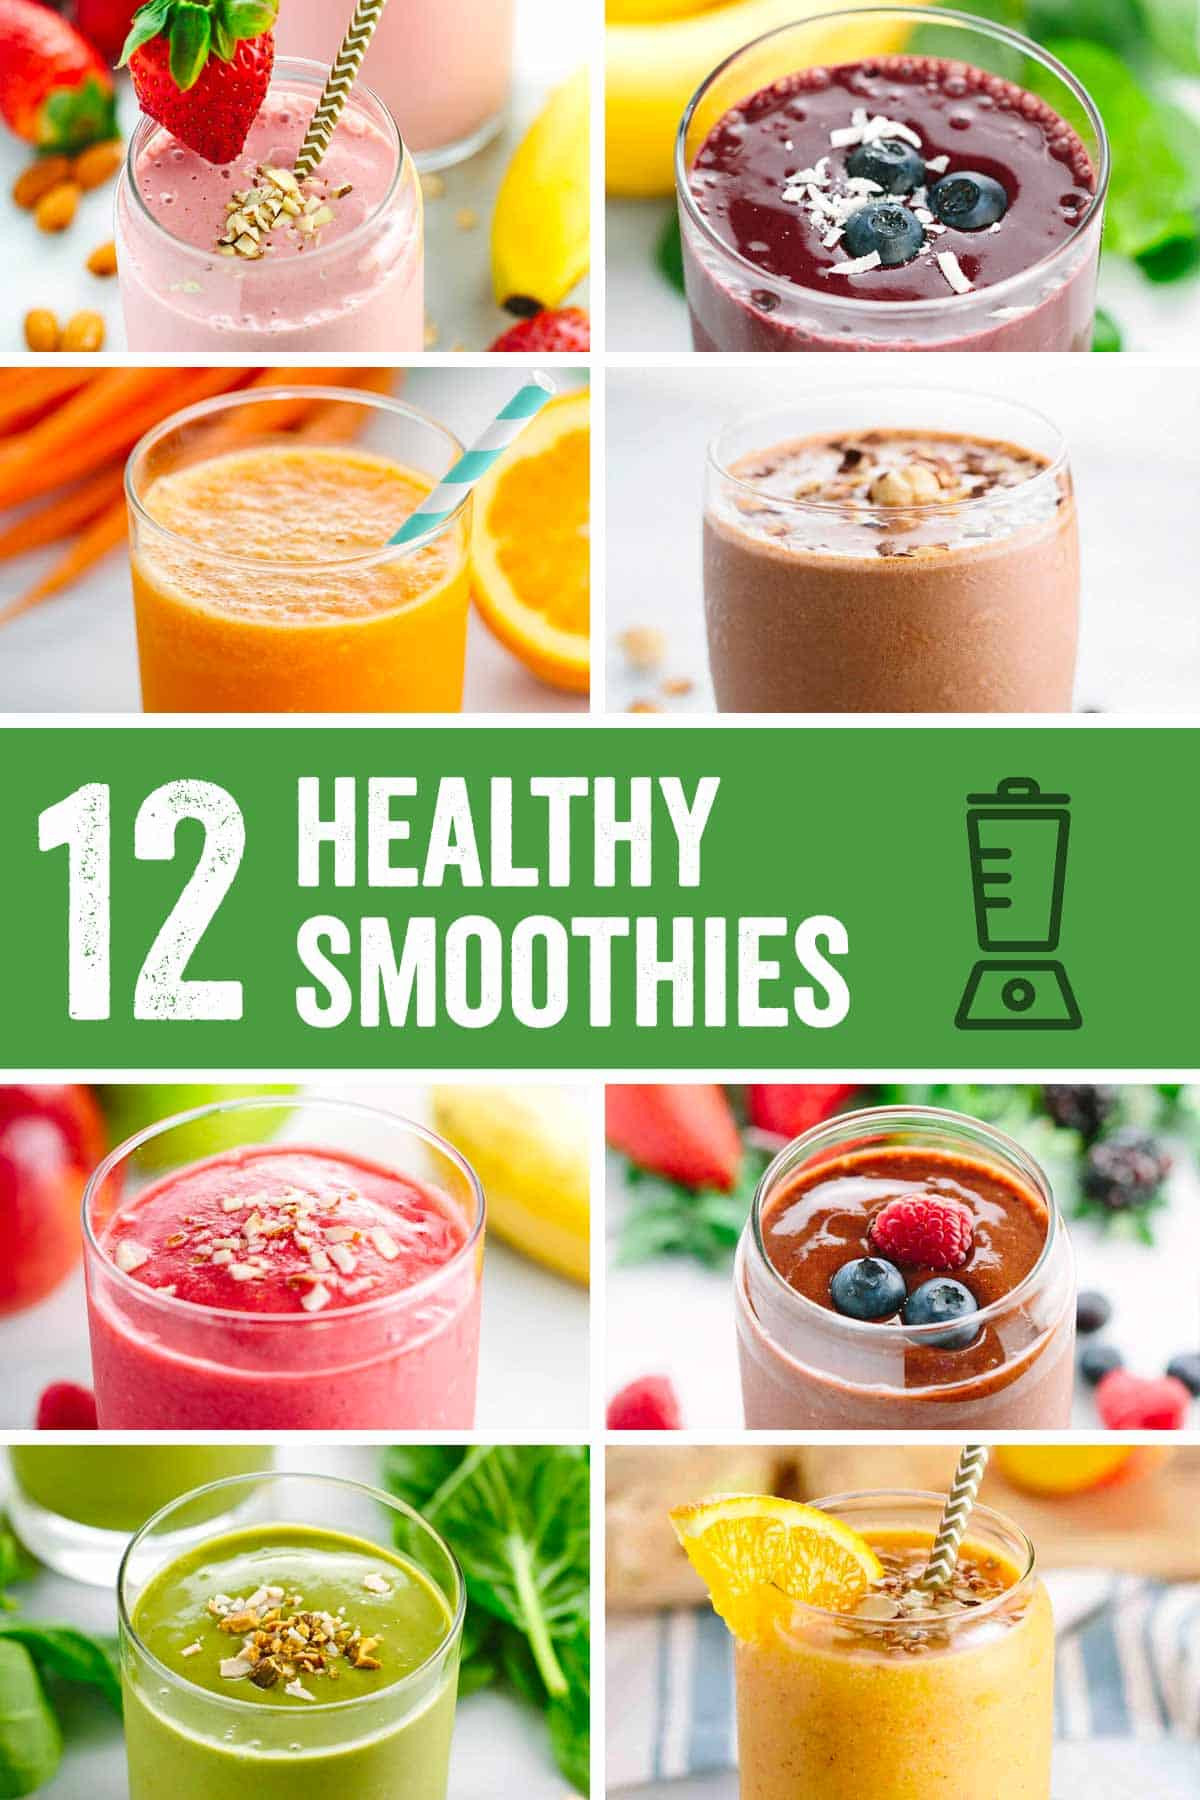 Healthy Smoothie Recipes For Breakfast  Roundup Easy Five Minute Healthy Smoothie Recipes